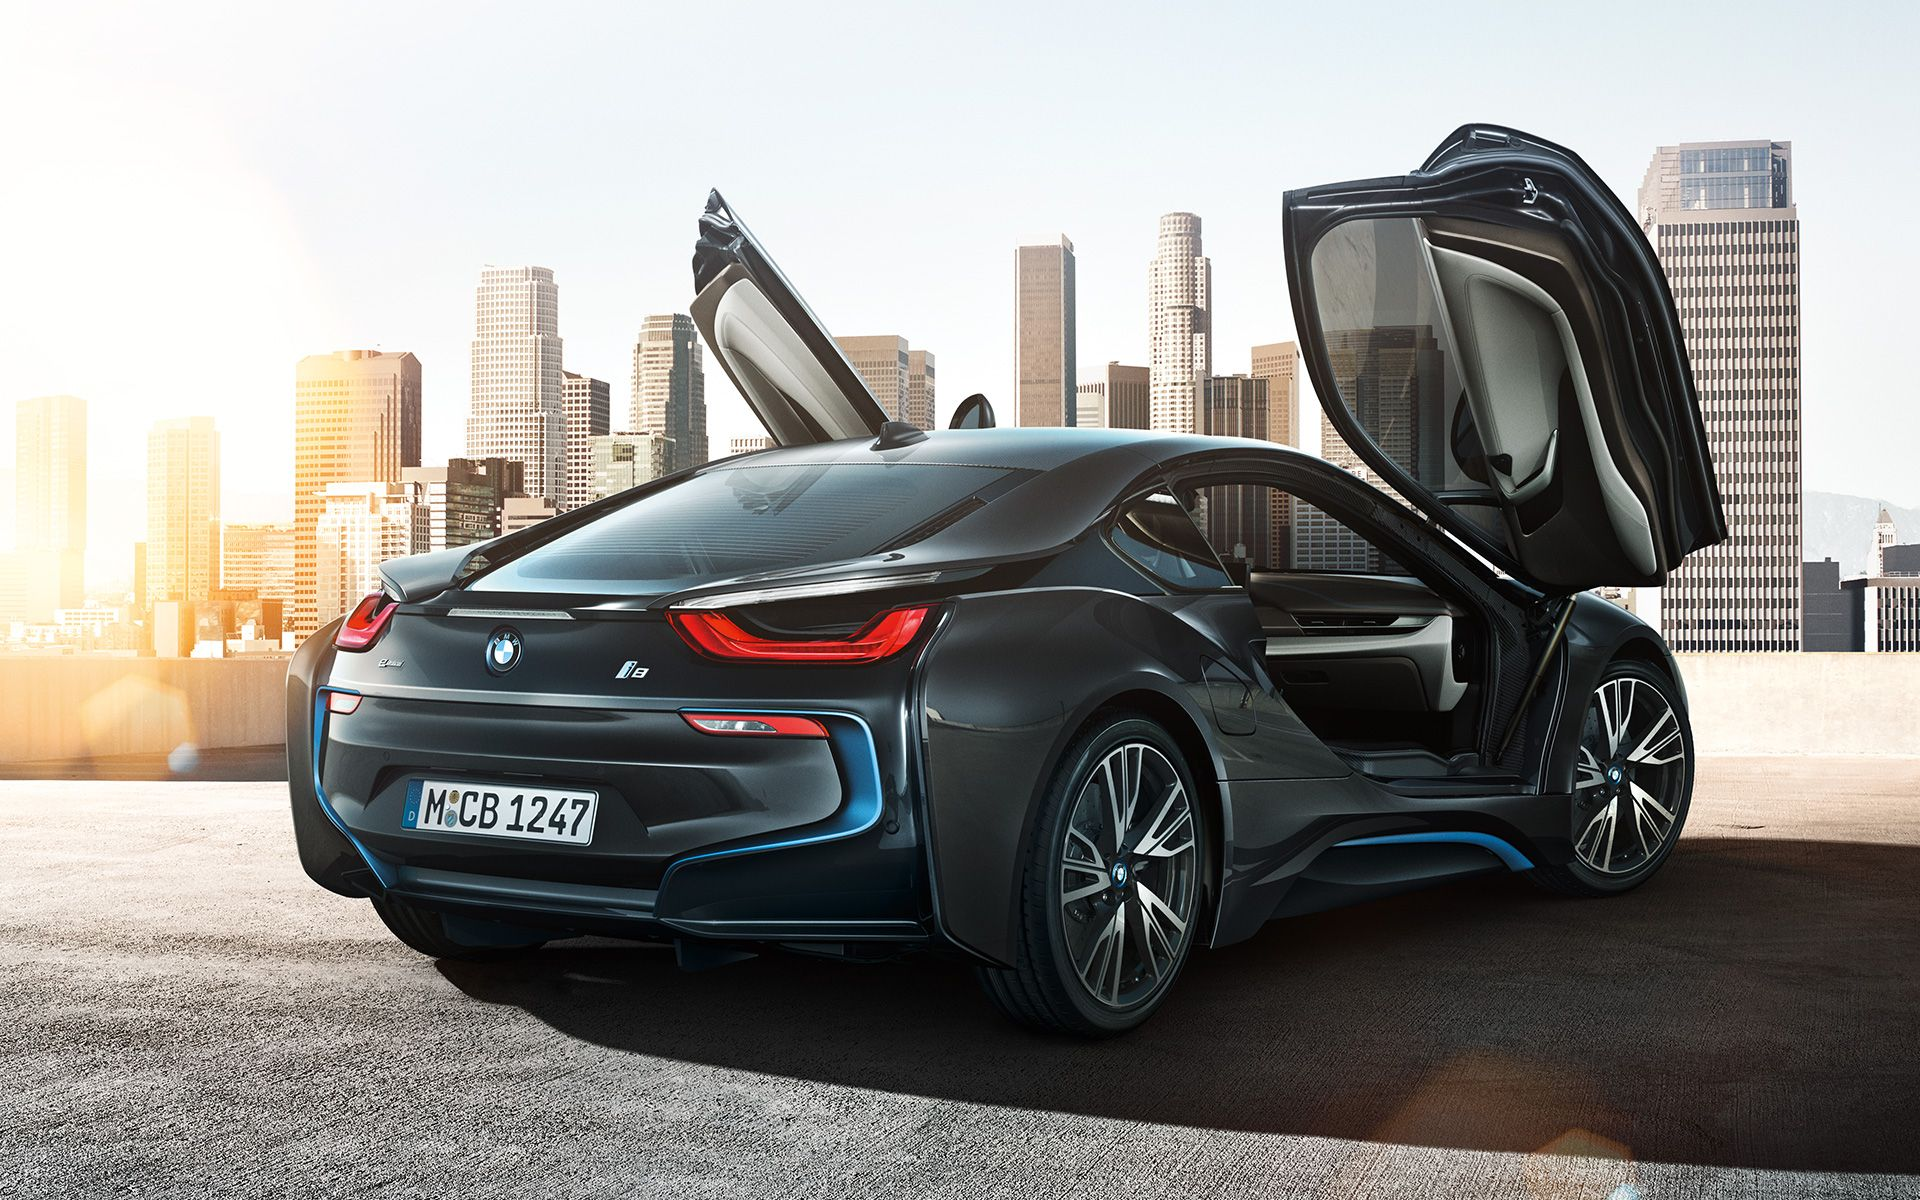 are you looking for bmw i8 hd wallpapers? download latest